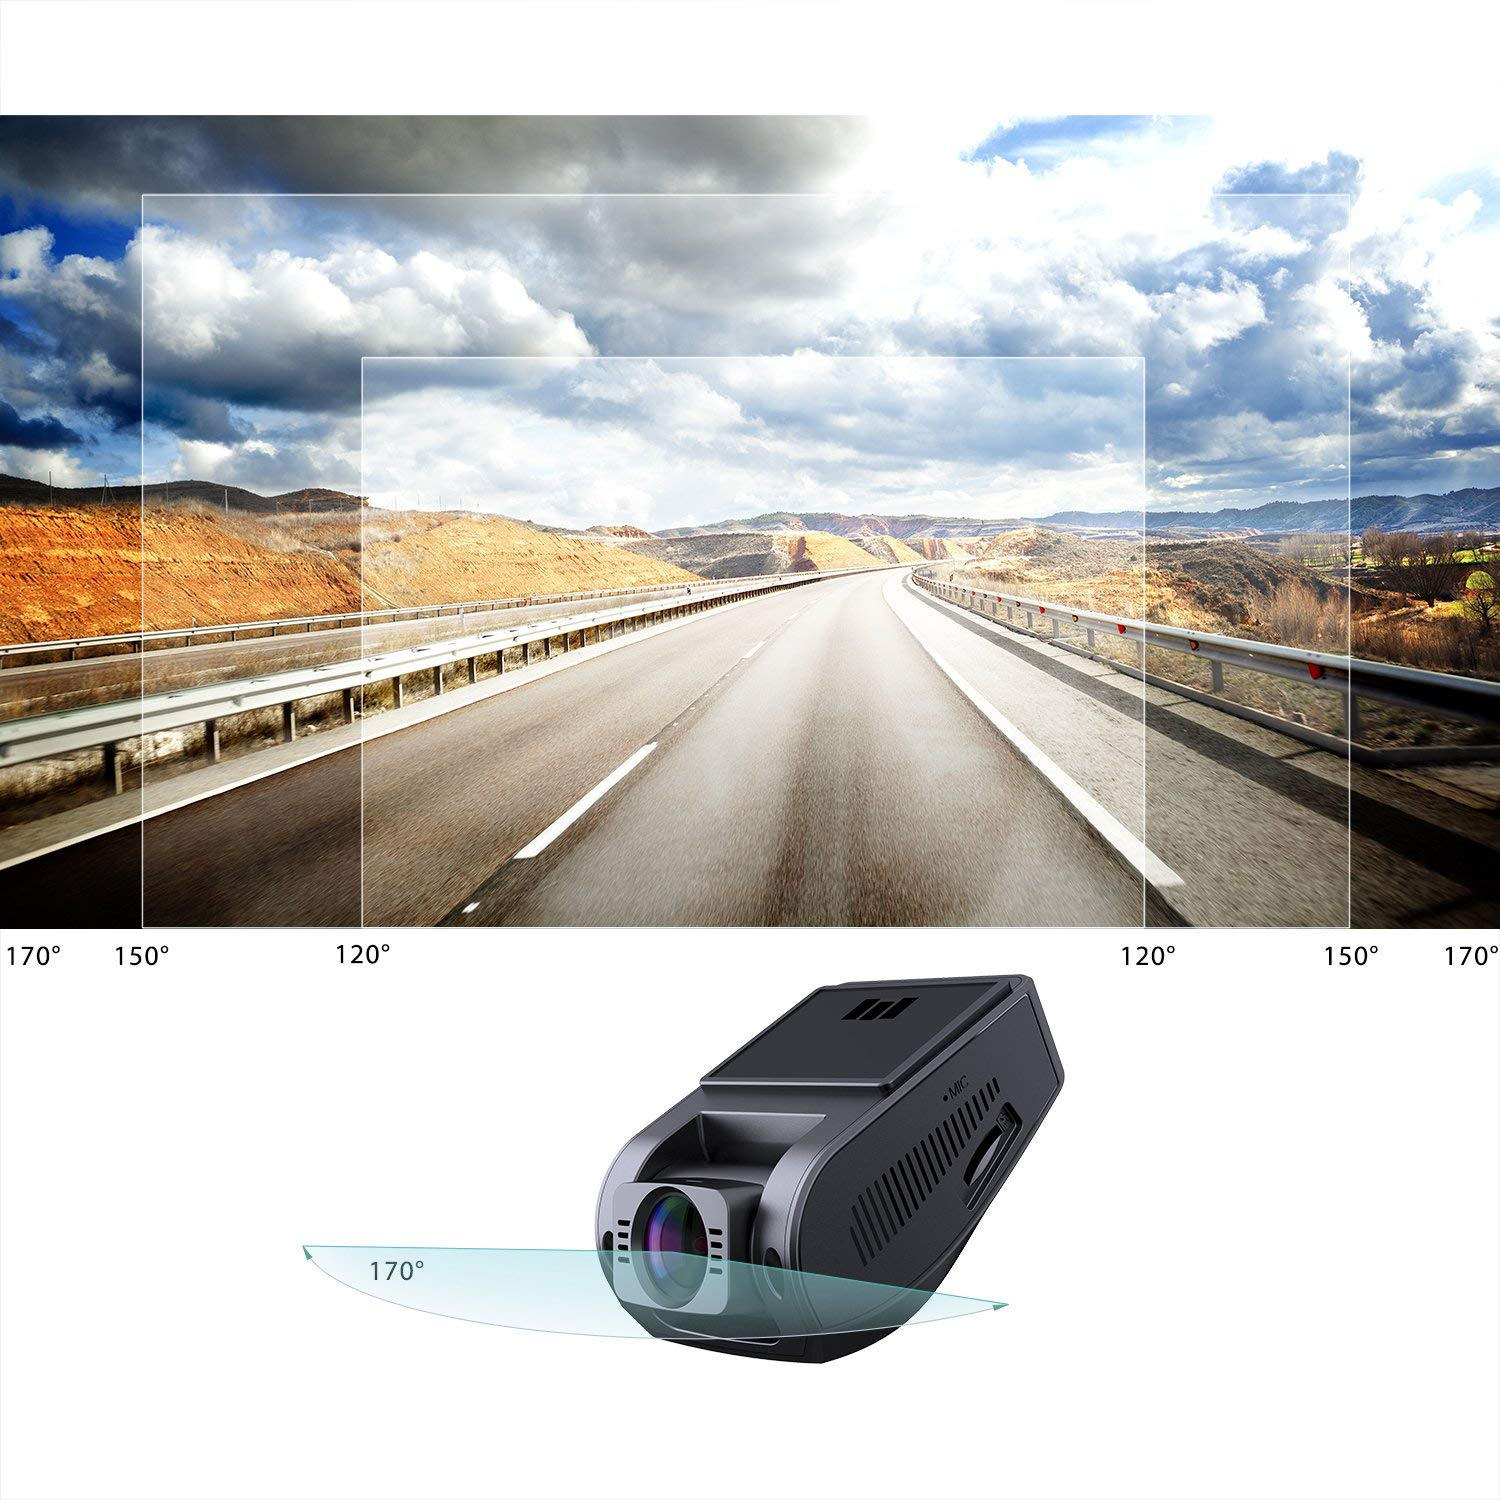 AUKEY DR-02 Car Dash Camera (Car Black Box) 1080p